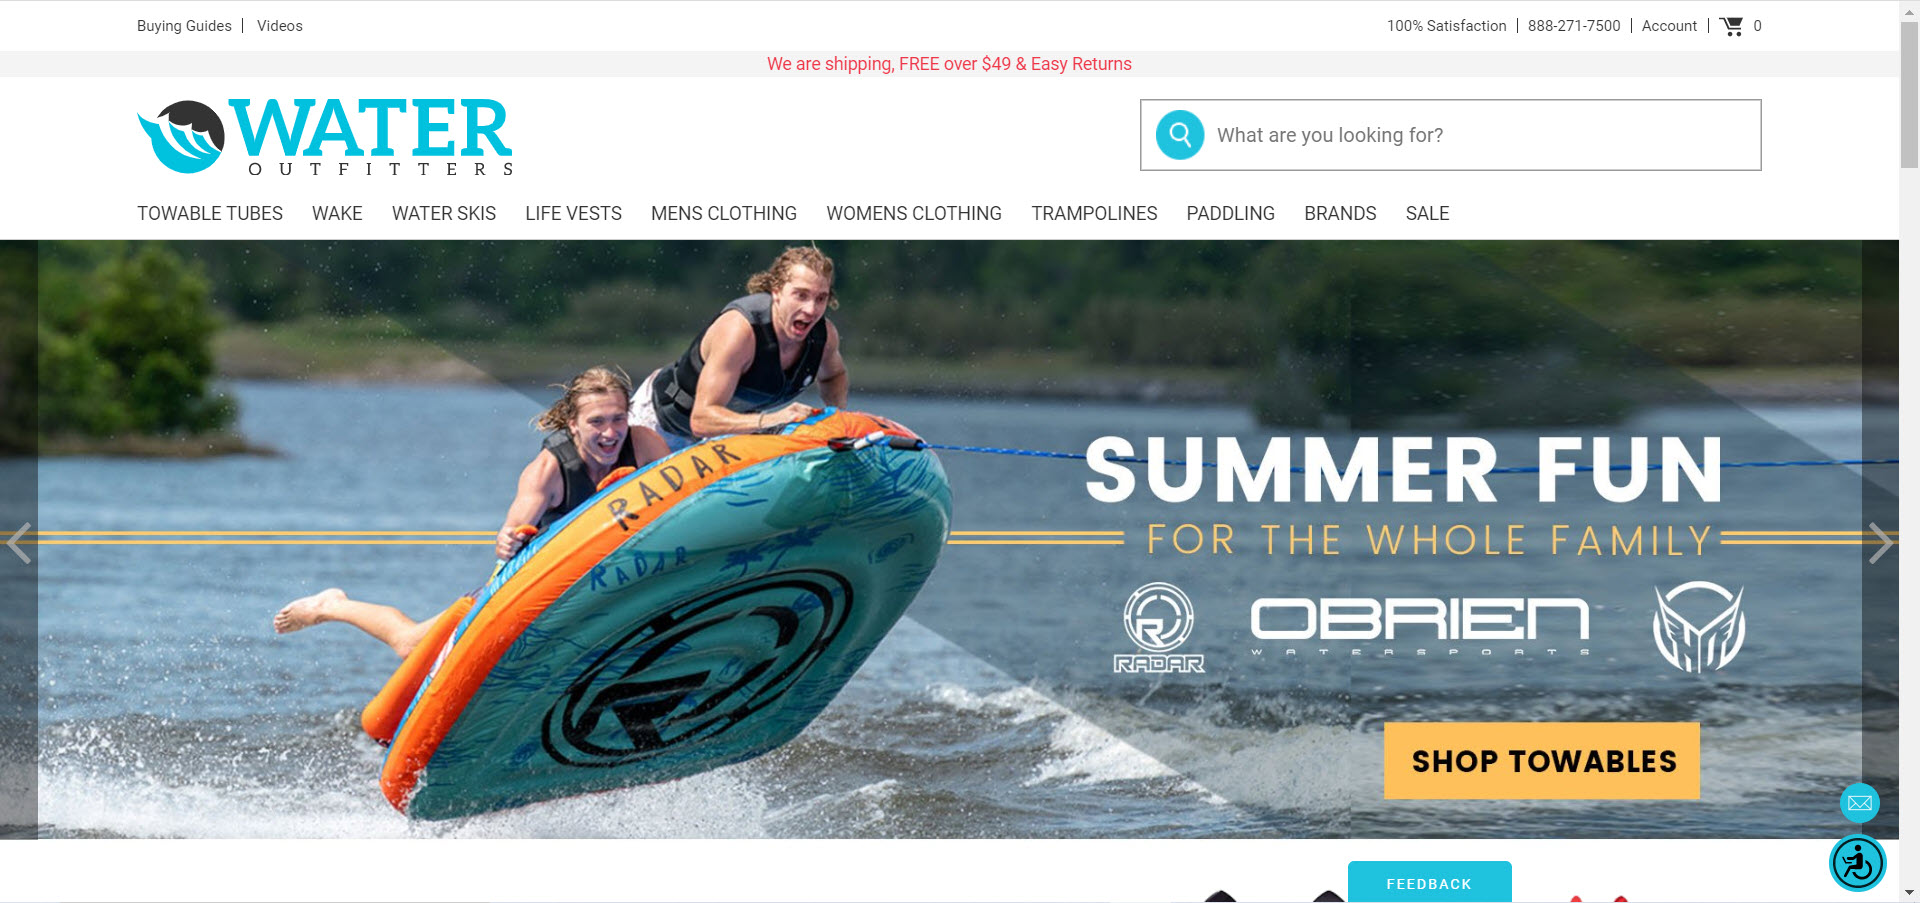 Boat Affiliate Programs - Water Outfitters